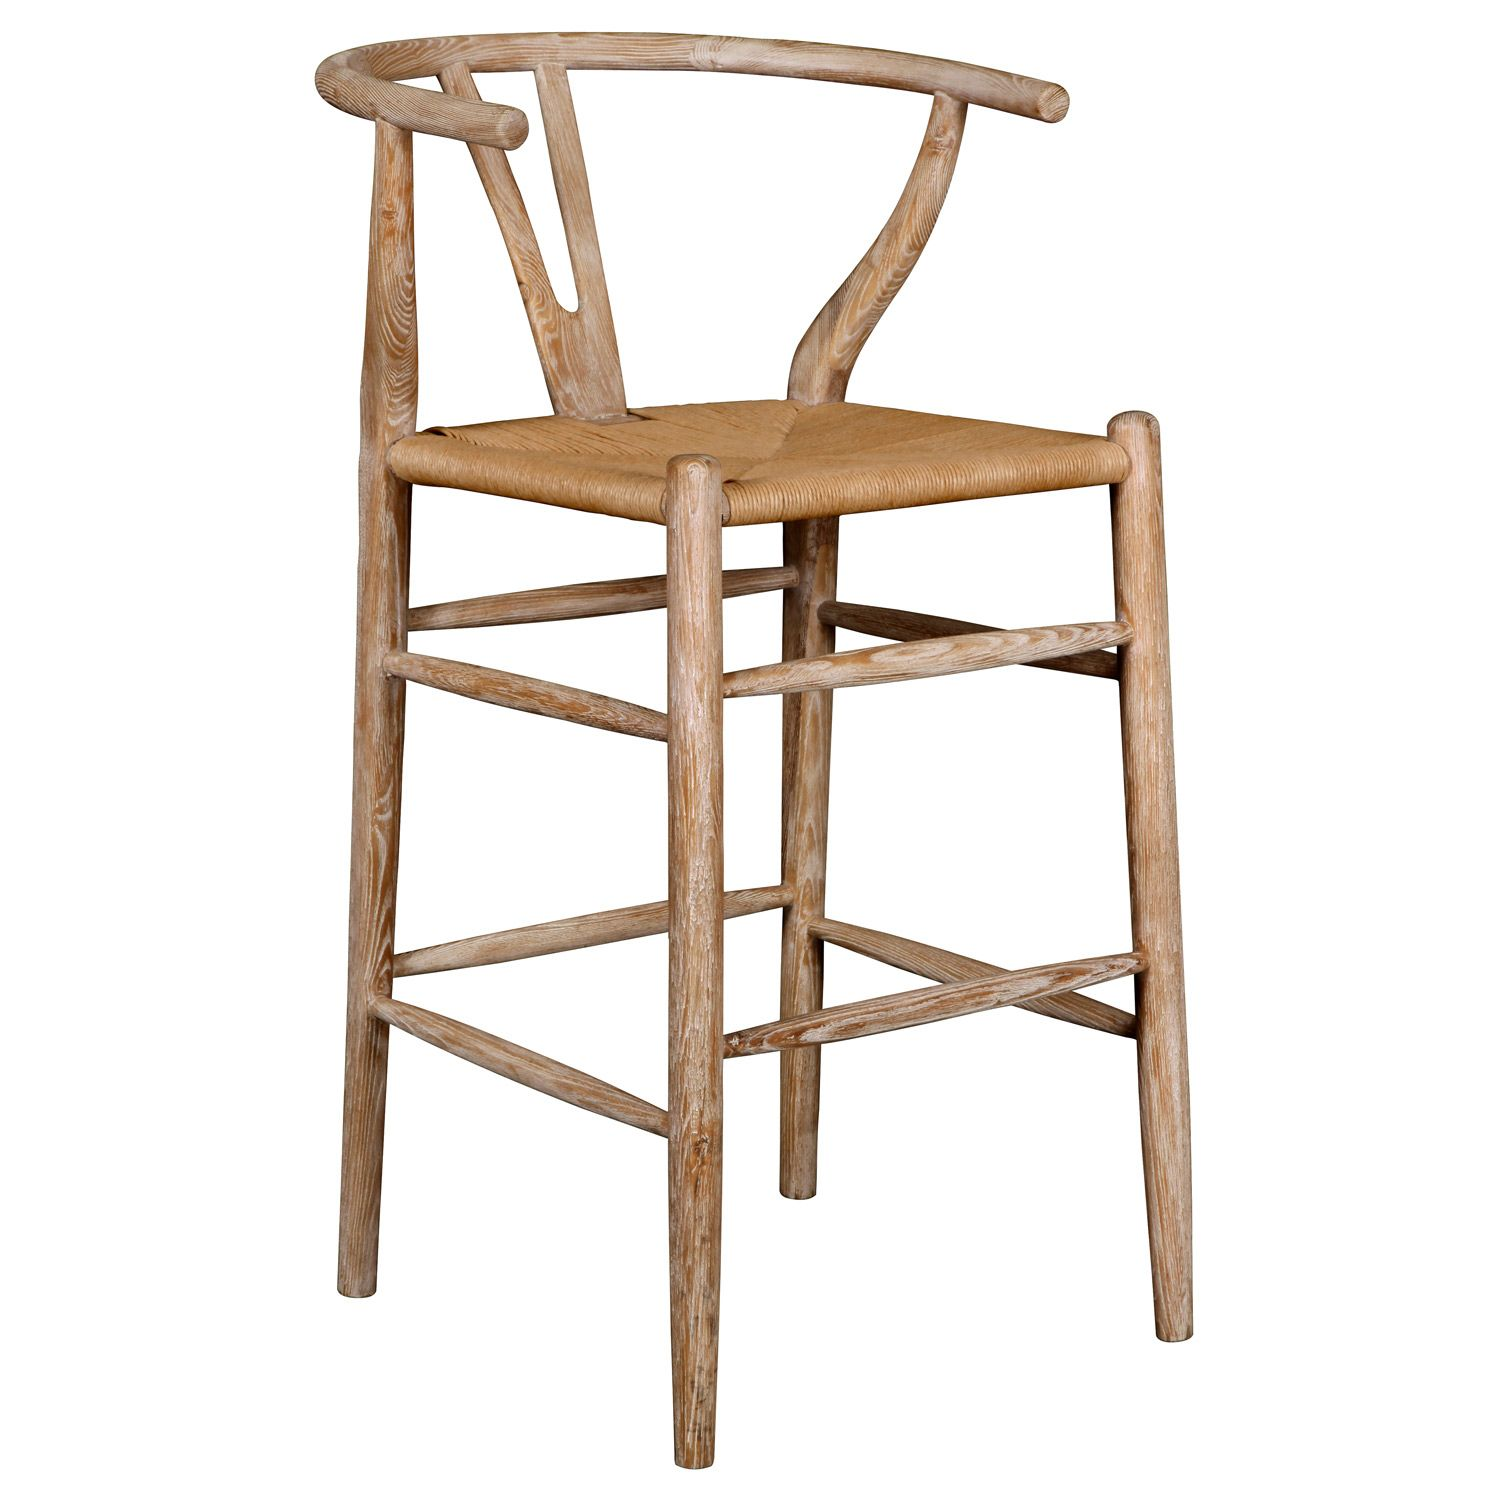 The Oslo Counter Stool By Bungalow 5 Pays Homage To The